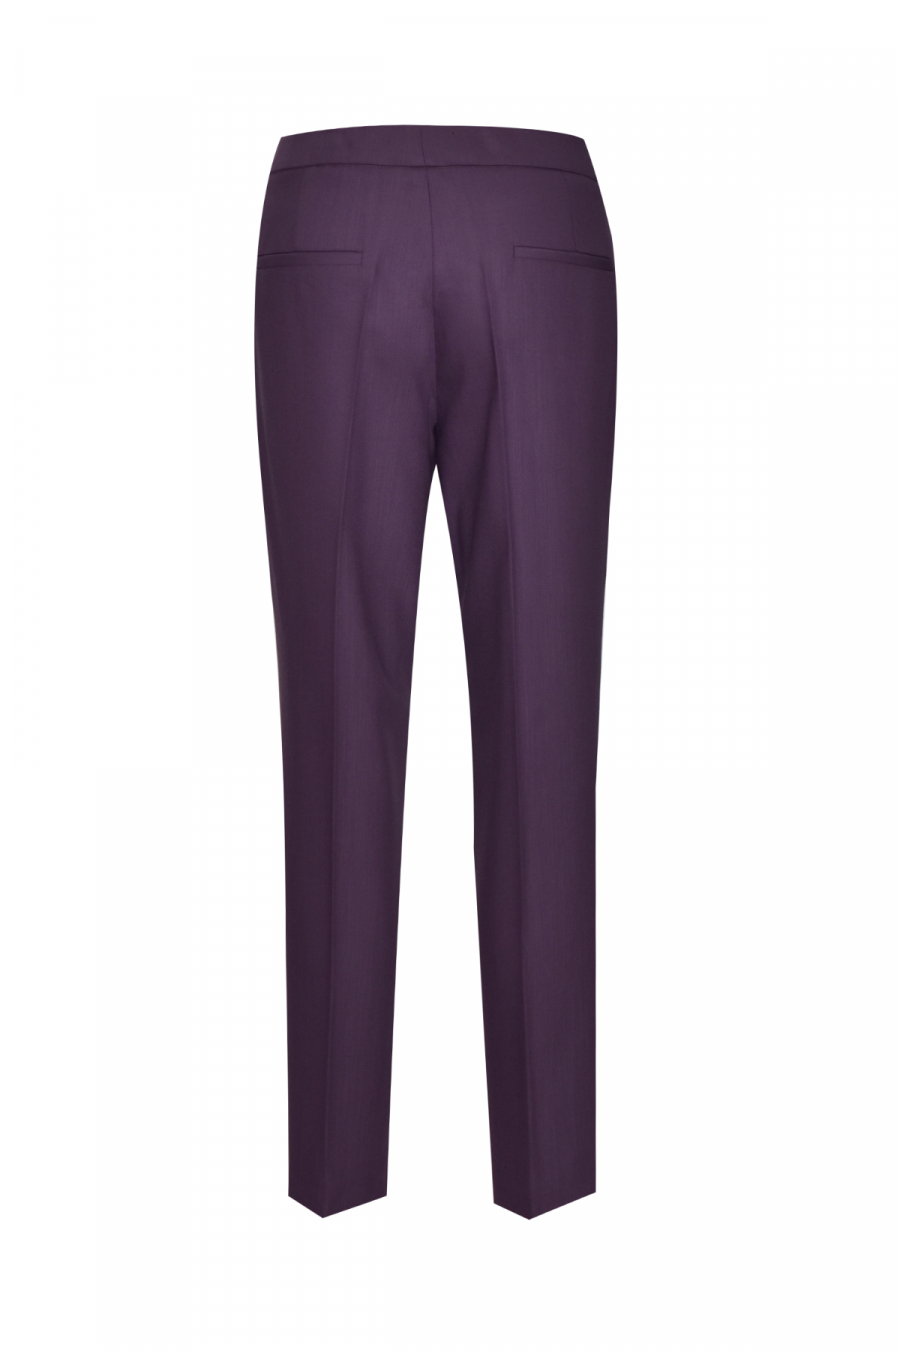 SIGARED PURPLE PANTS